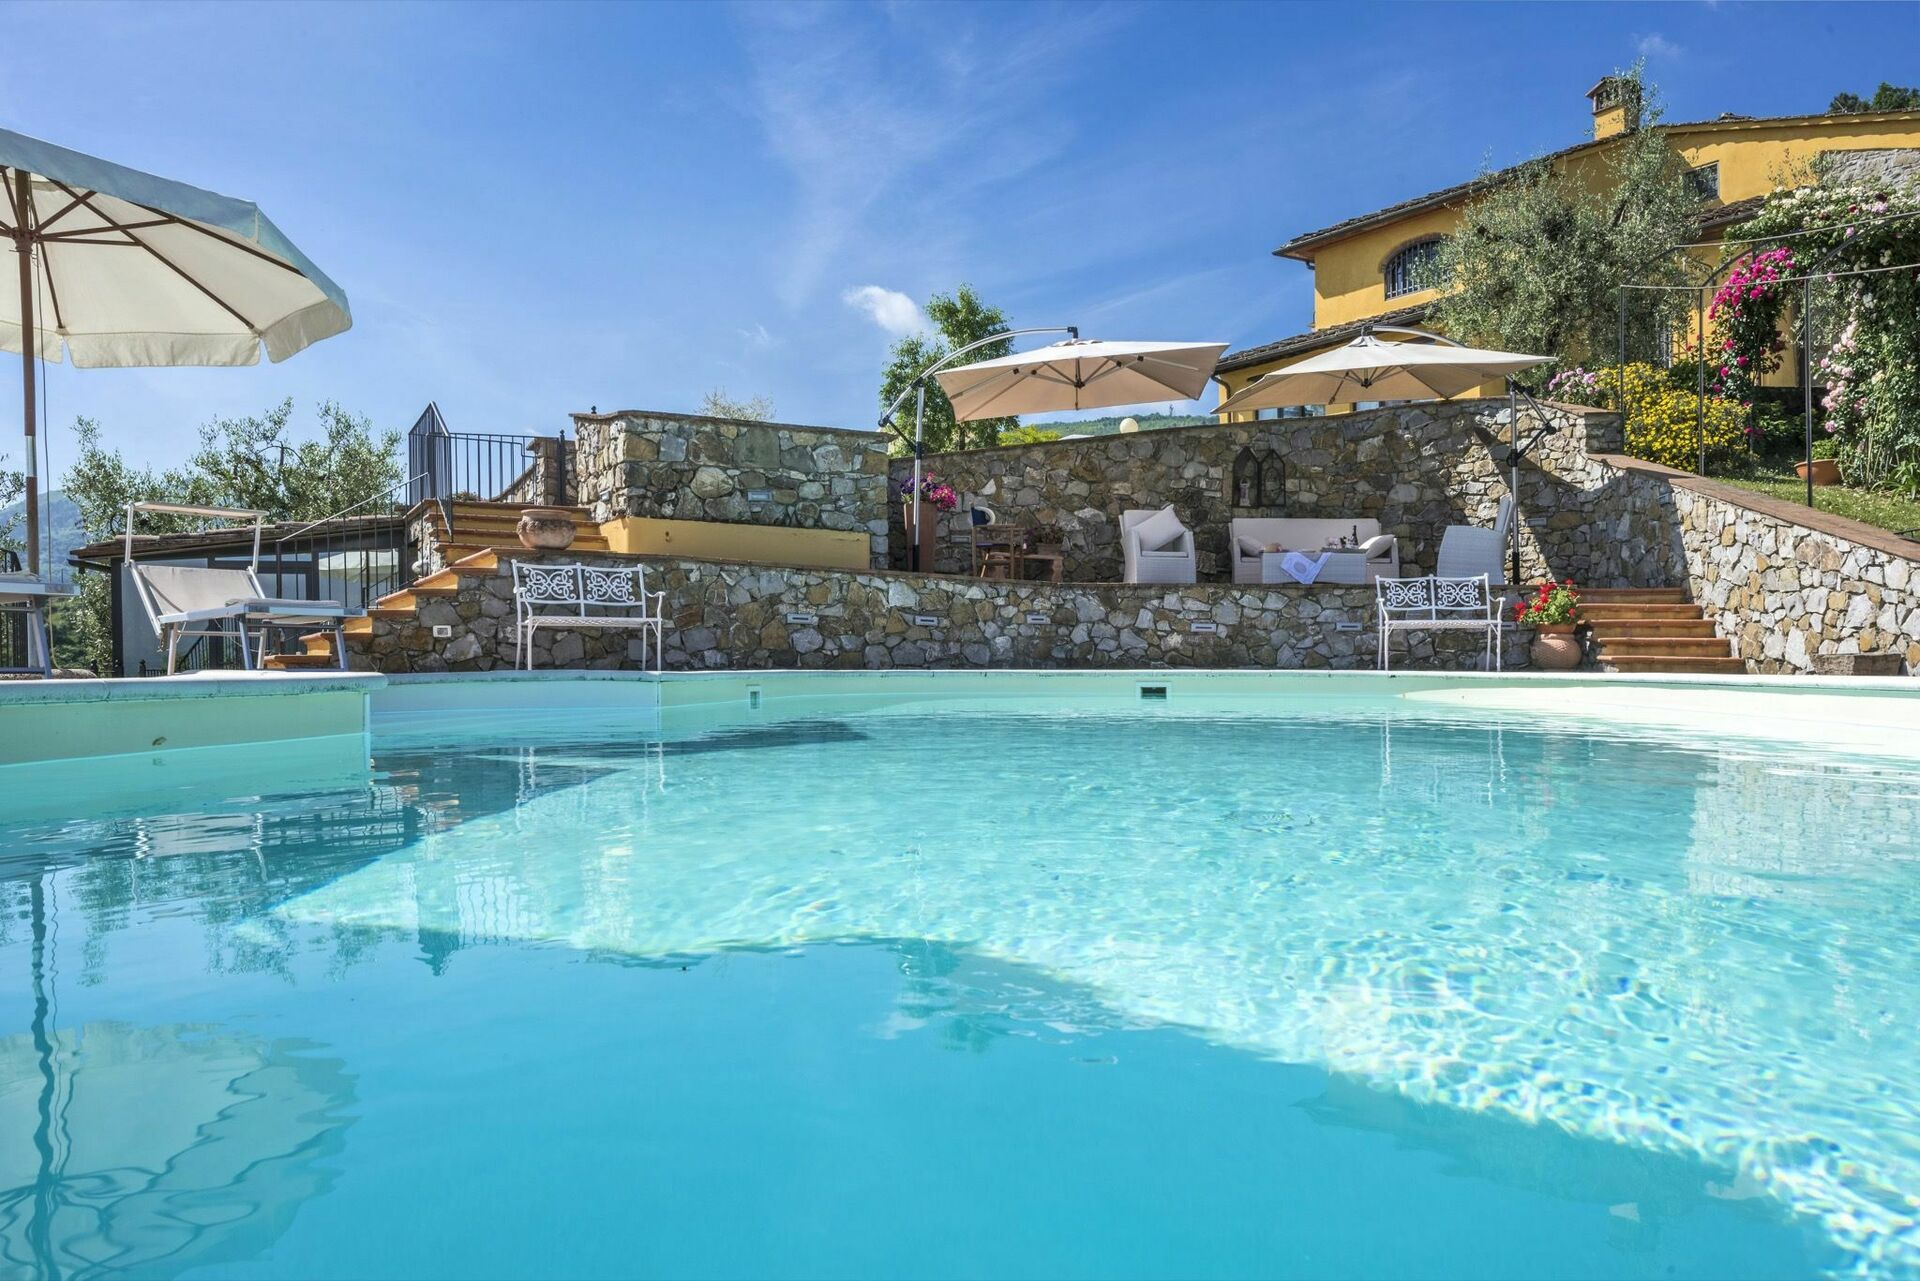 Holiday in an apartment in Tuscany